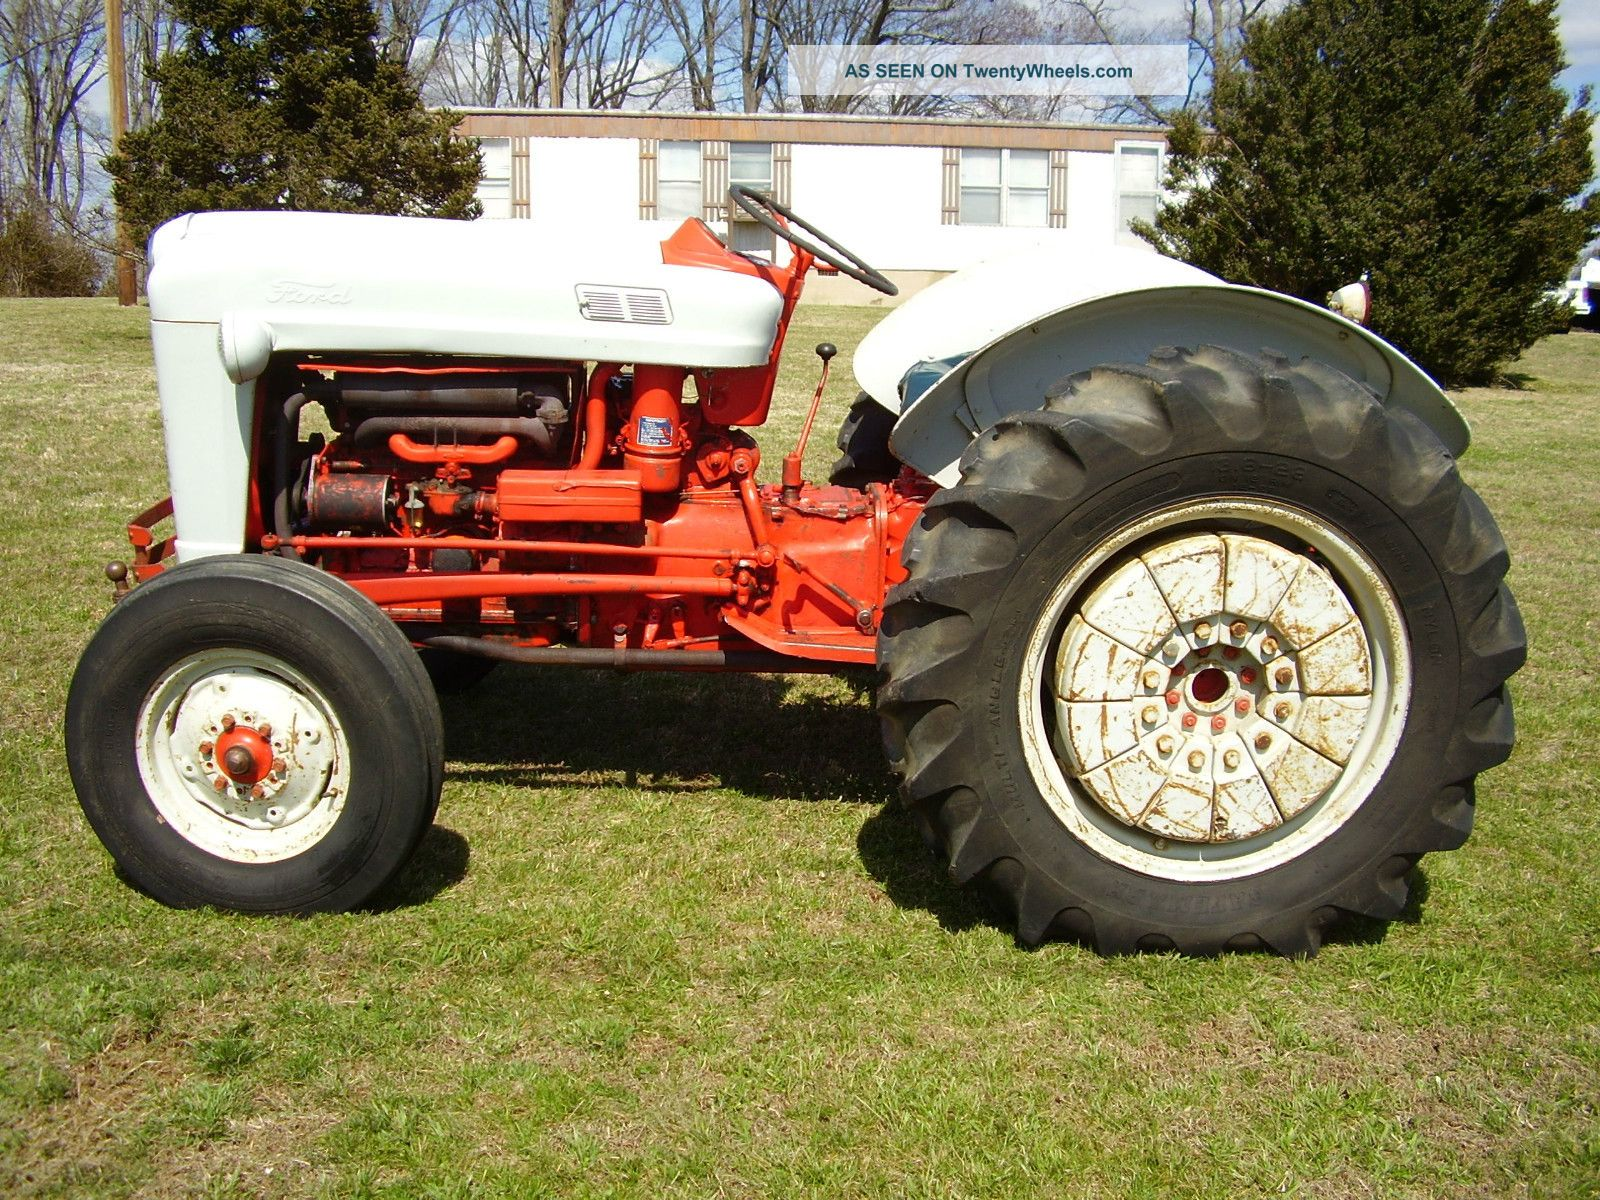 Orignal Ford 800 2wd 5 Sd Tractor on ford naa hydraulics diagram, 800 series ford tractor carburetor, 1953 ford 600 hydraulic pump diagram, ford alternator parts diagram, 800 series ford tractor parts, ford 3000 parts diagram,